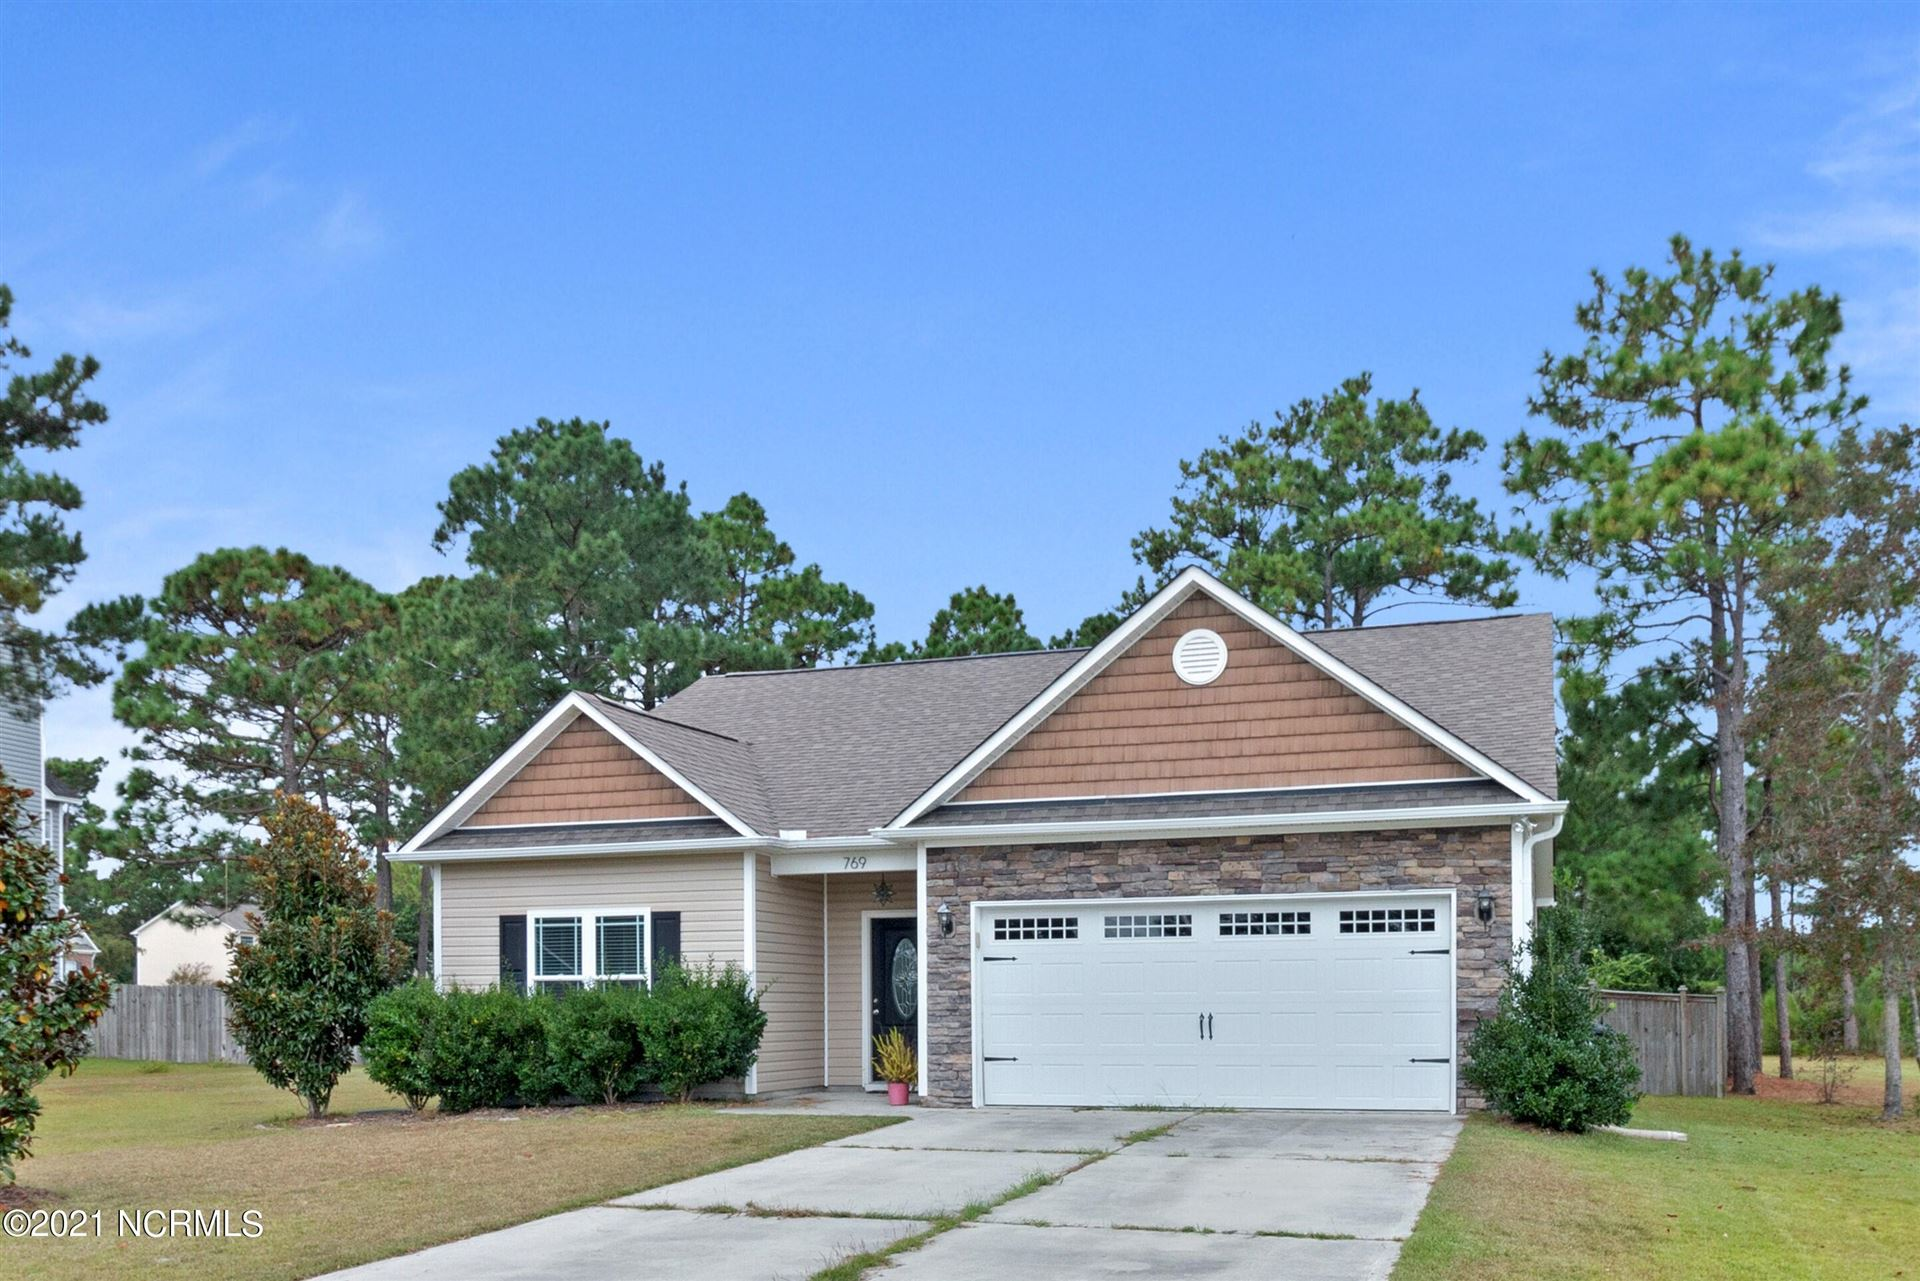 Photo of 769 Jim Grant Avenue, Sneads Ferry, NC 28460 (MLS # 100292986)